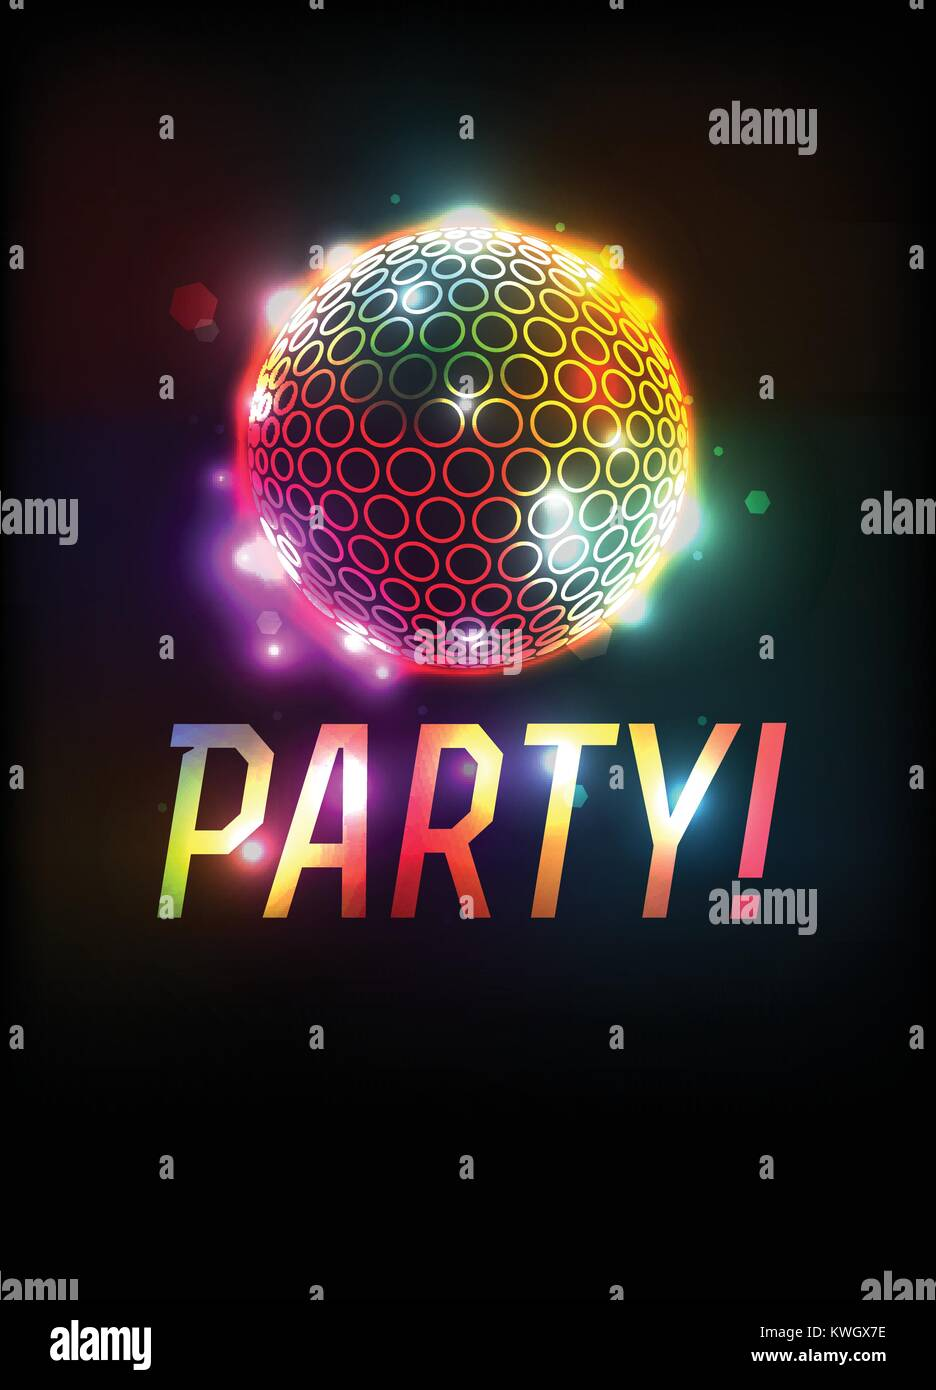 a party ball and word art template background illustration vector